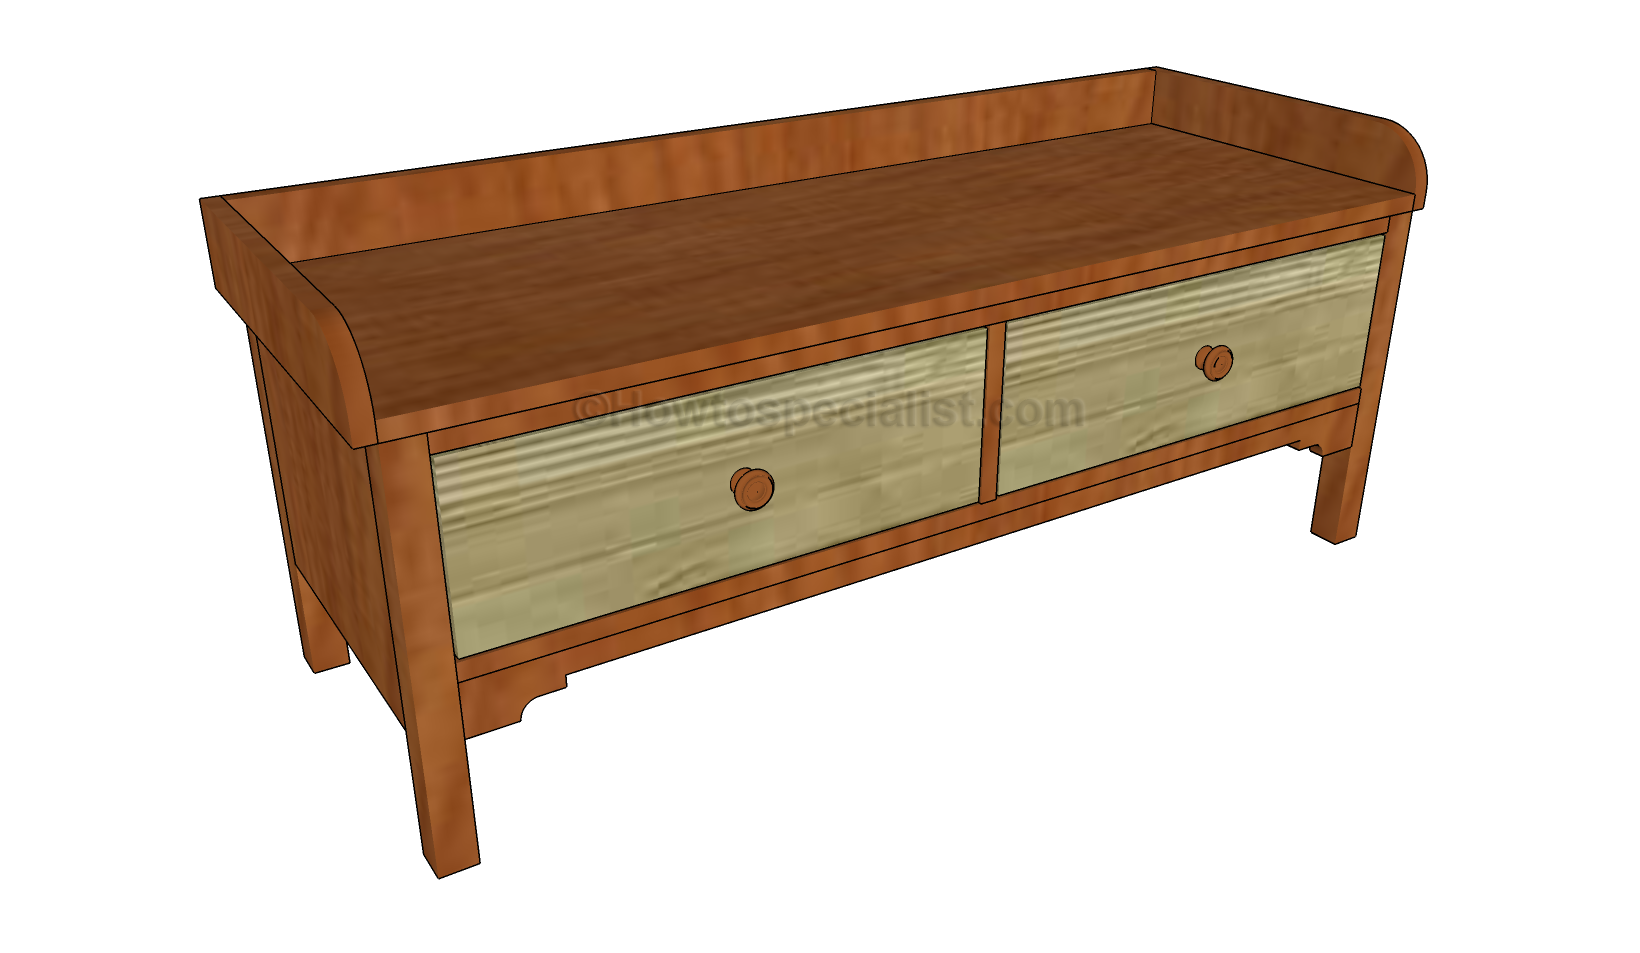 Foyer Furniture Plans : How to build a mudroom bench howtospecialist